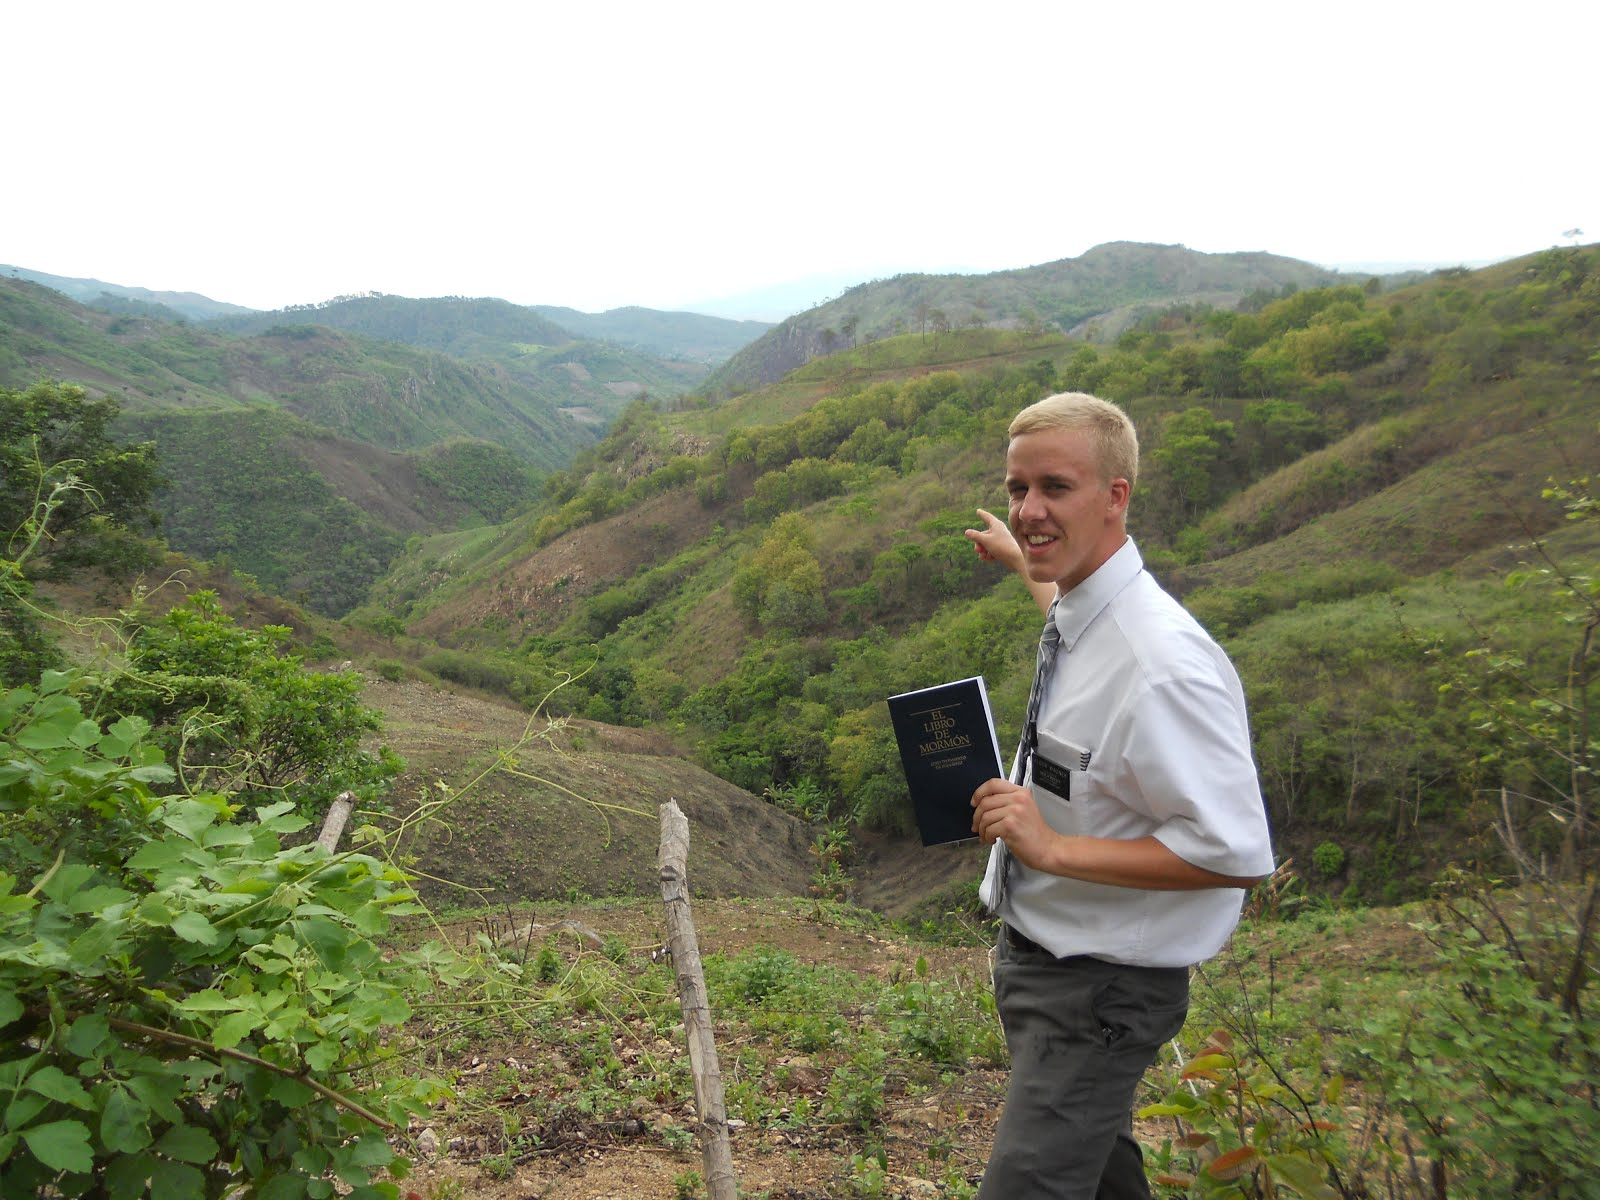 Elder Riley J. Wagner